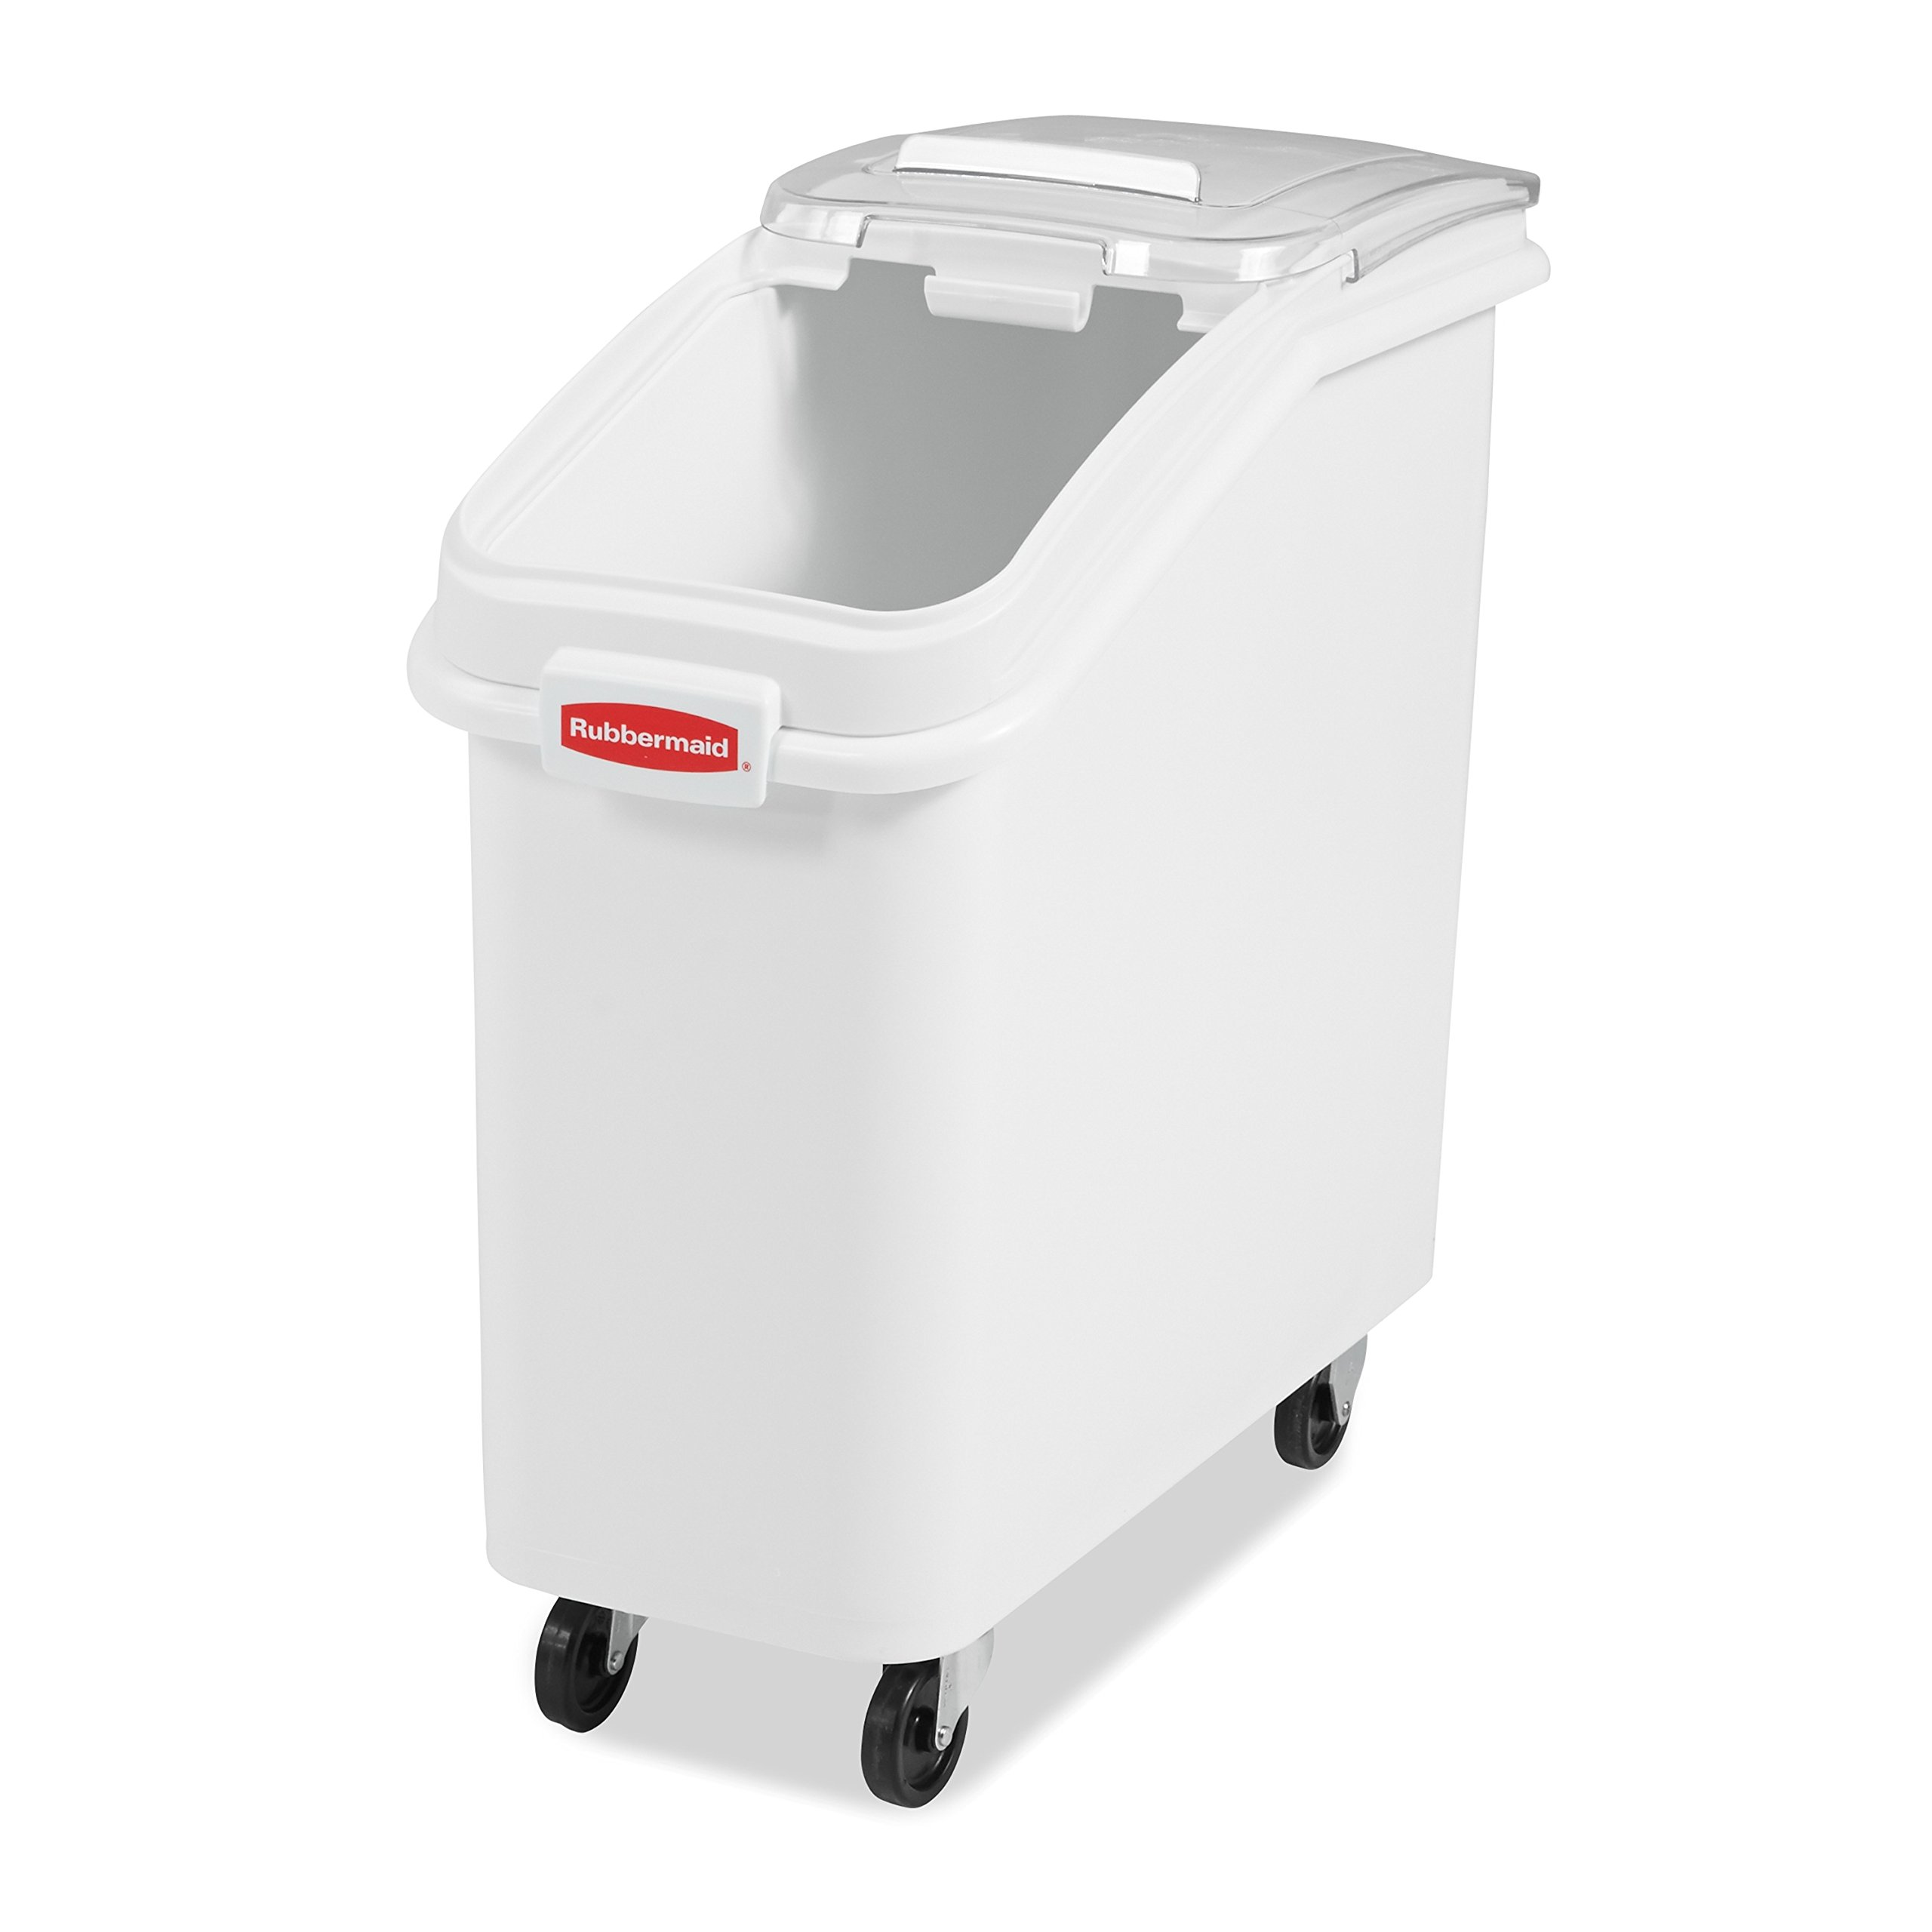 Rubbermaid Commercial ProSave Shelf-Storage Ingredient Bin With Scoop, Plastic, Stackable, 400-cup capacity, White, (FG360088WHT) by Rubbermaid Commercial Products (Image #3)